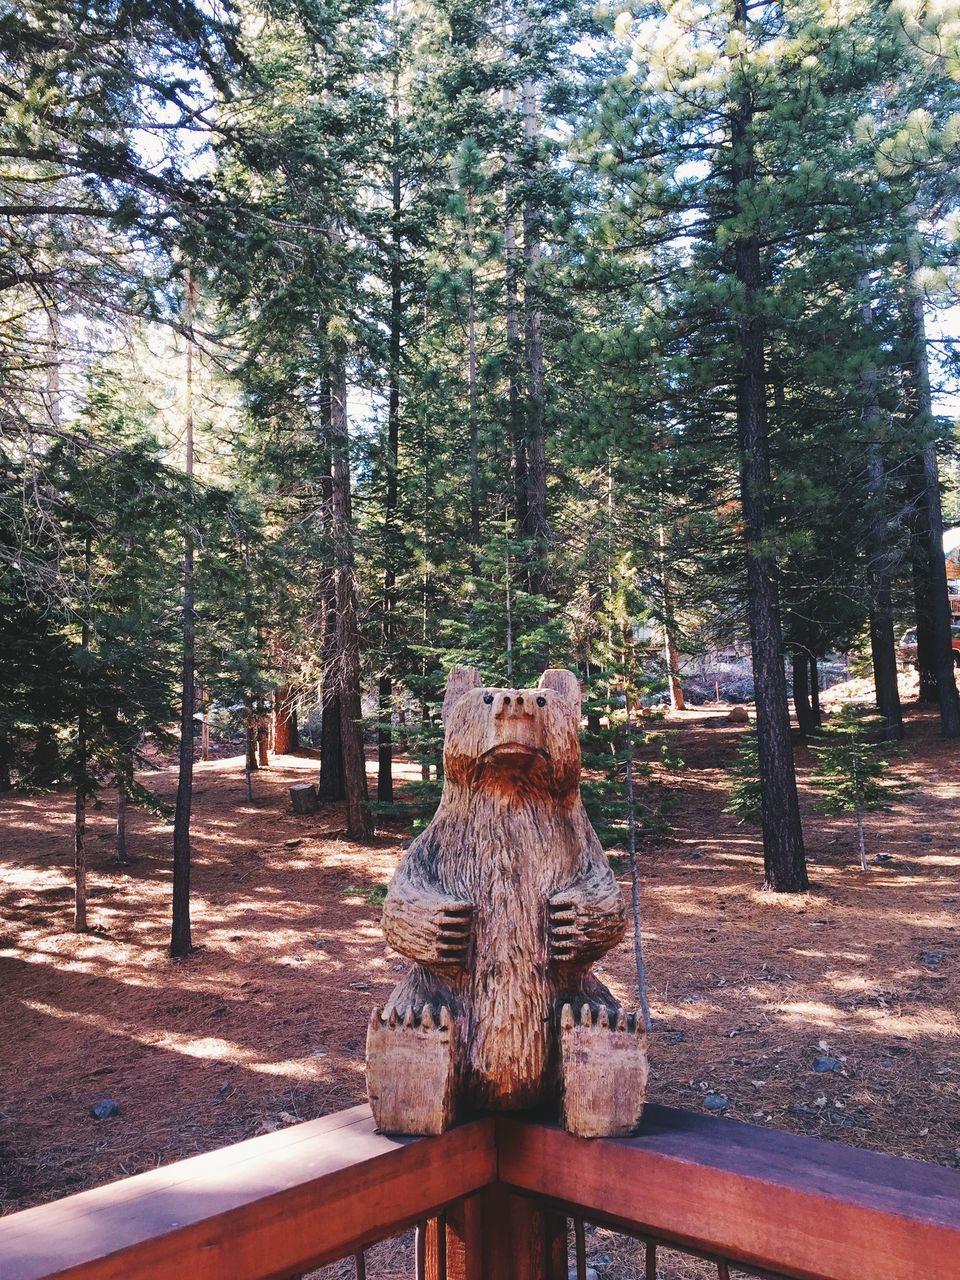 Wooden Statue On Railing Against Forest